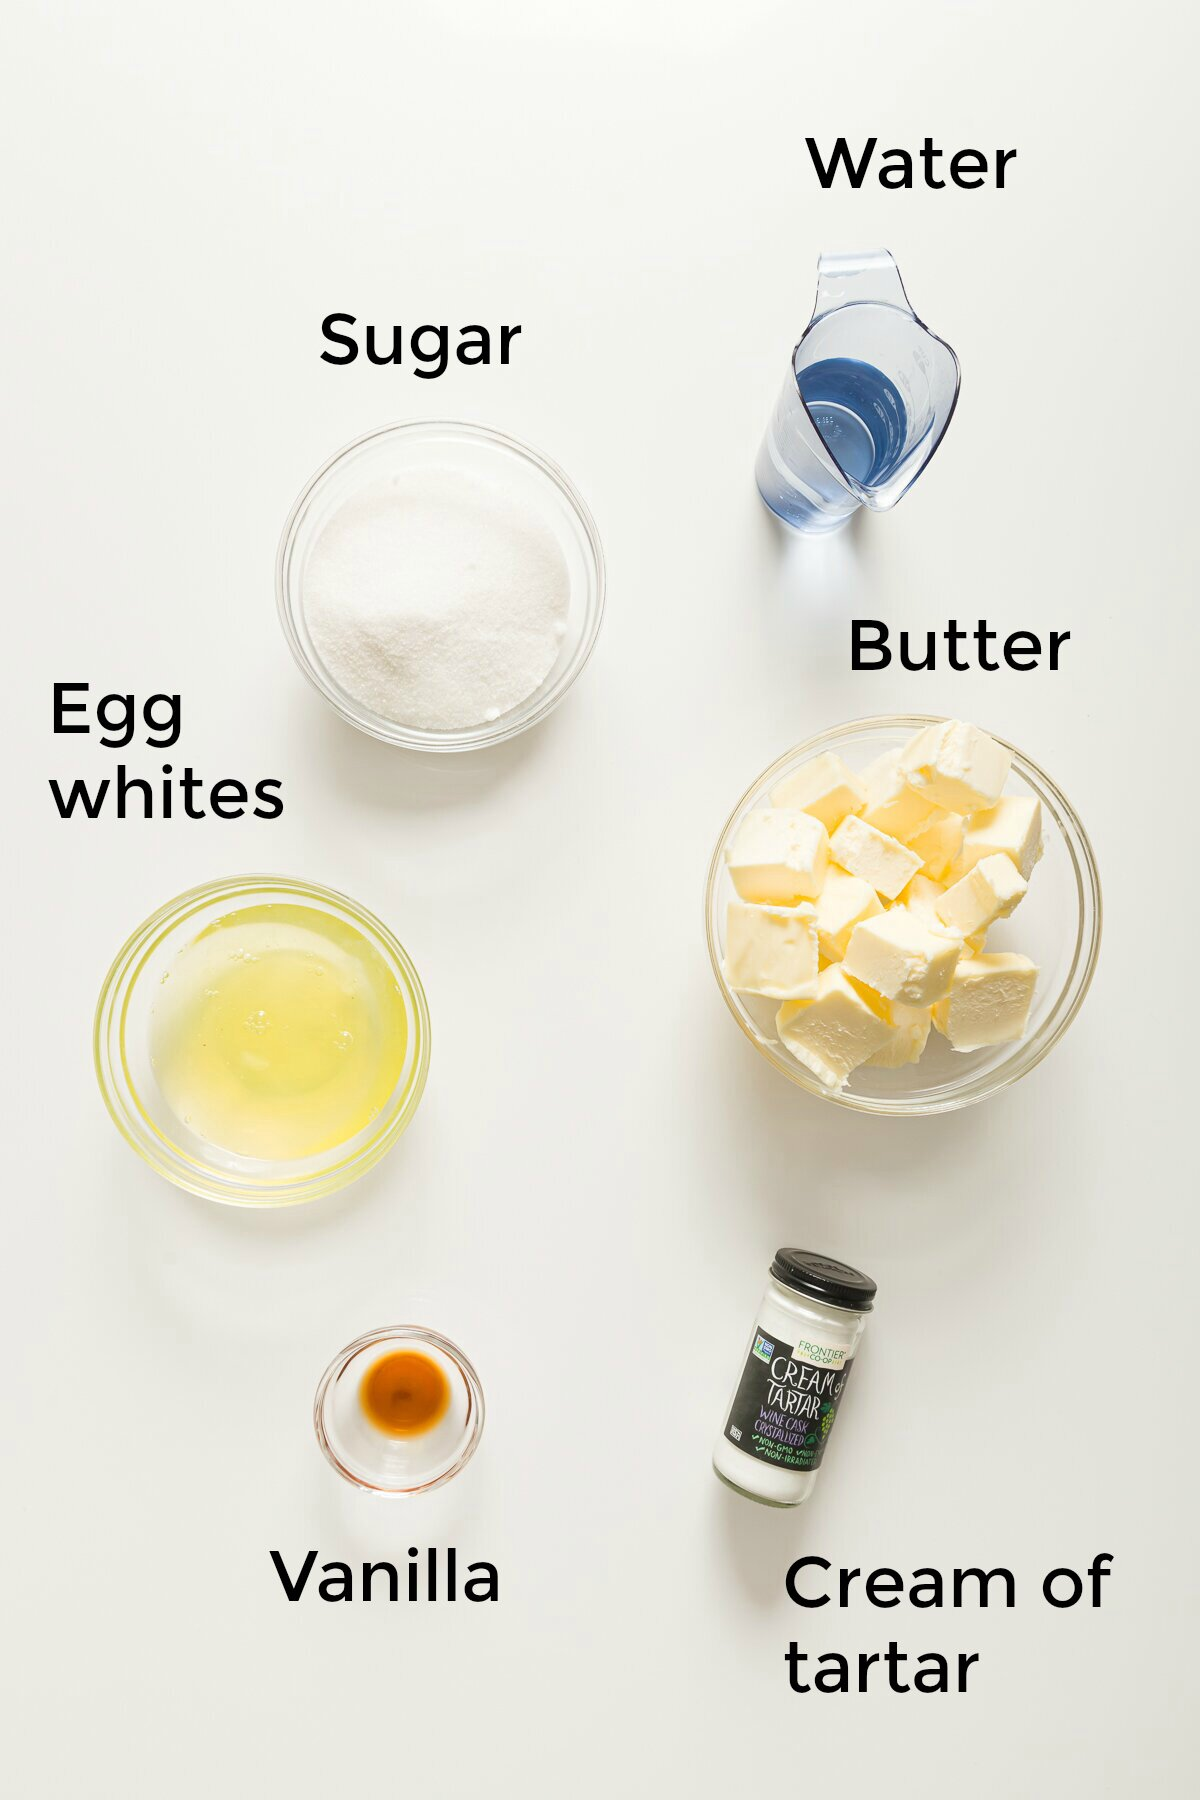 top-down view of ingredients needed to make Italian meringue buttercream frosting: sugar, water, egg whites, butter, vanilla extract, and cream of tartar